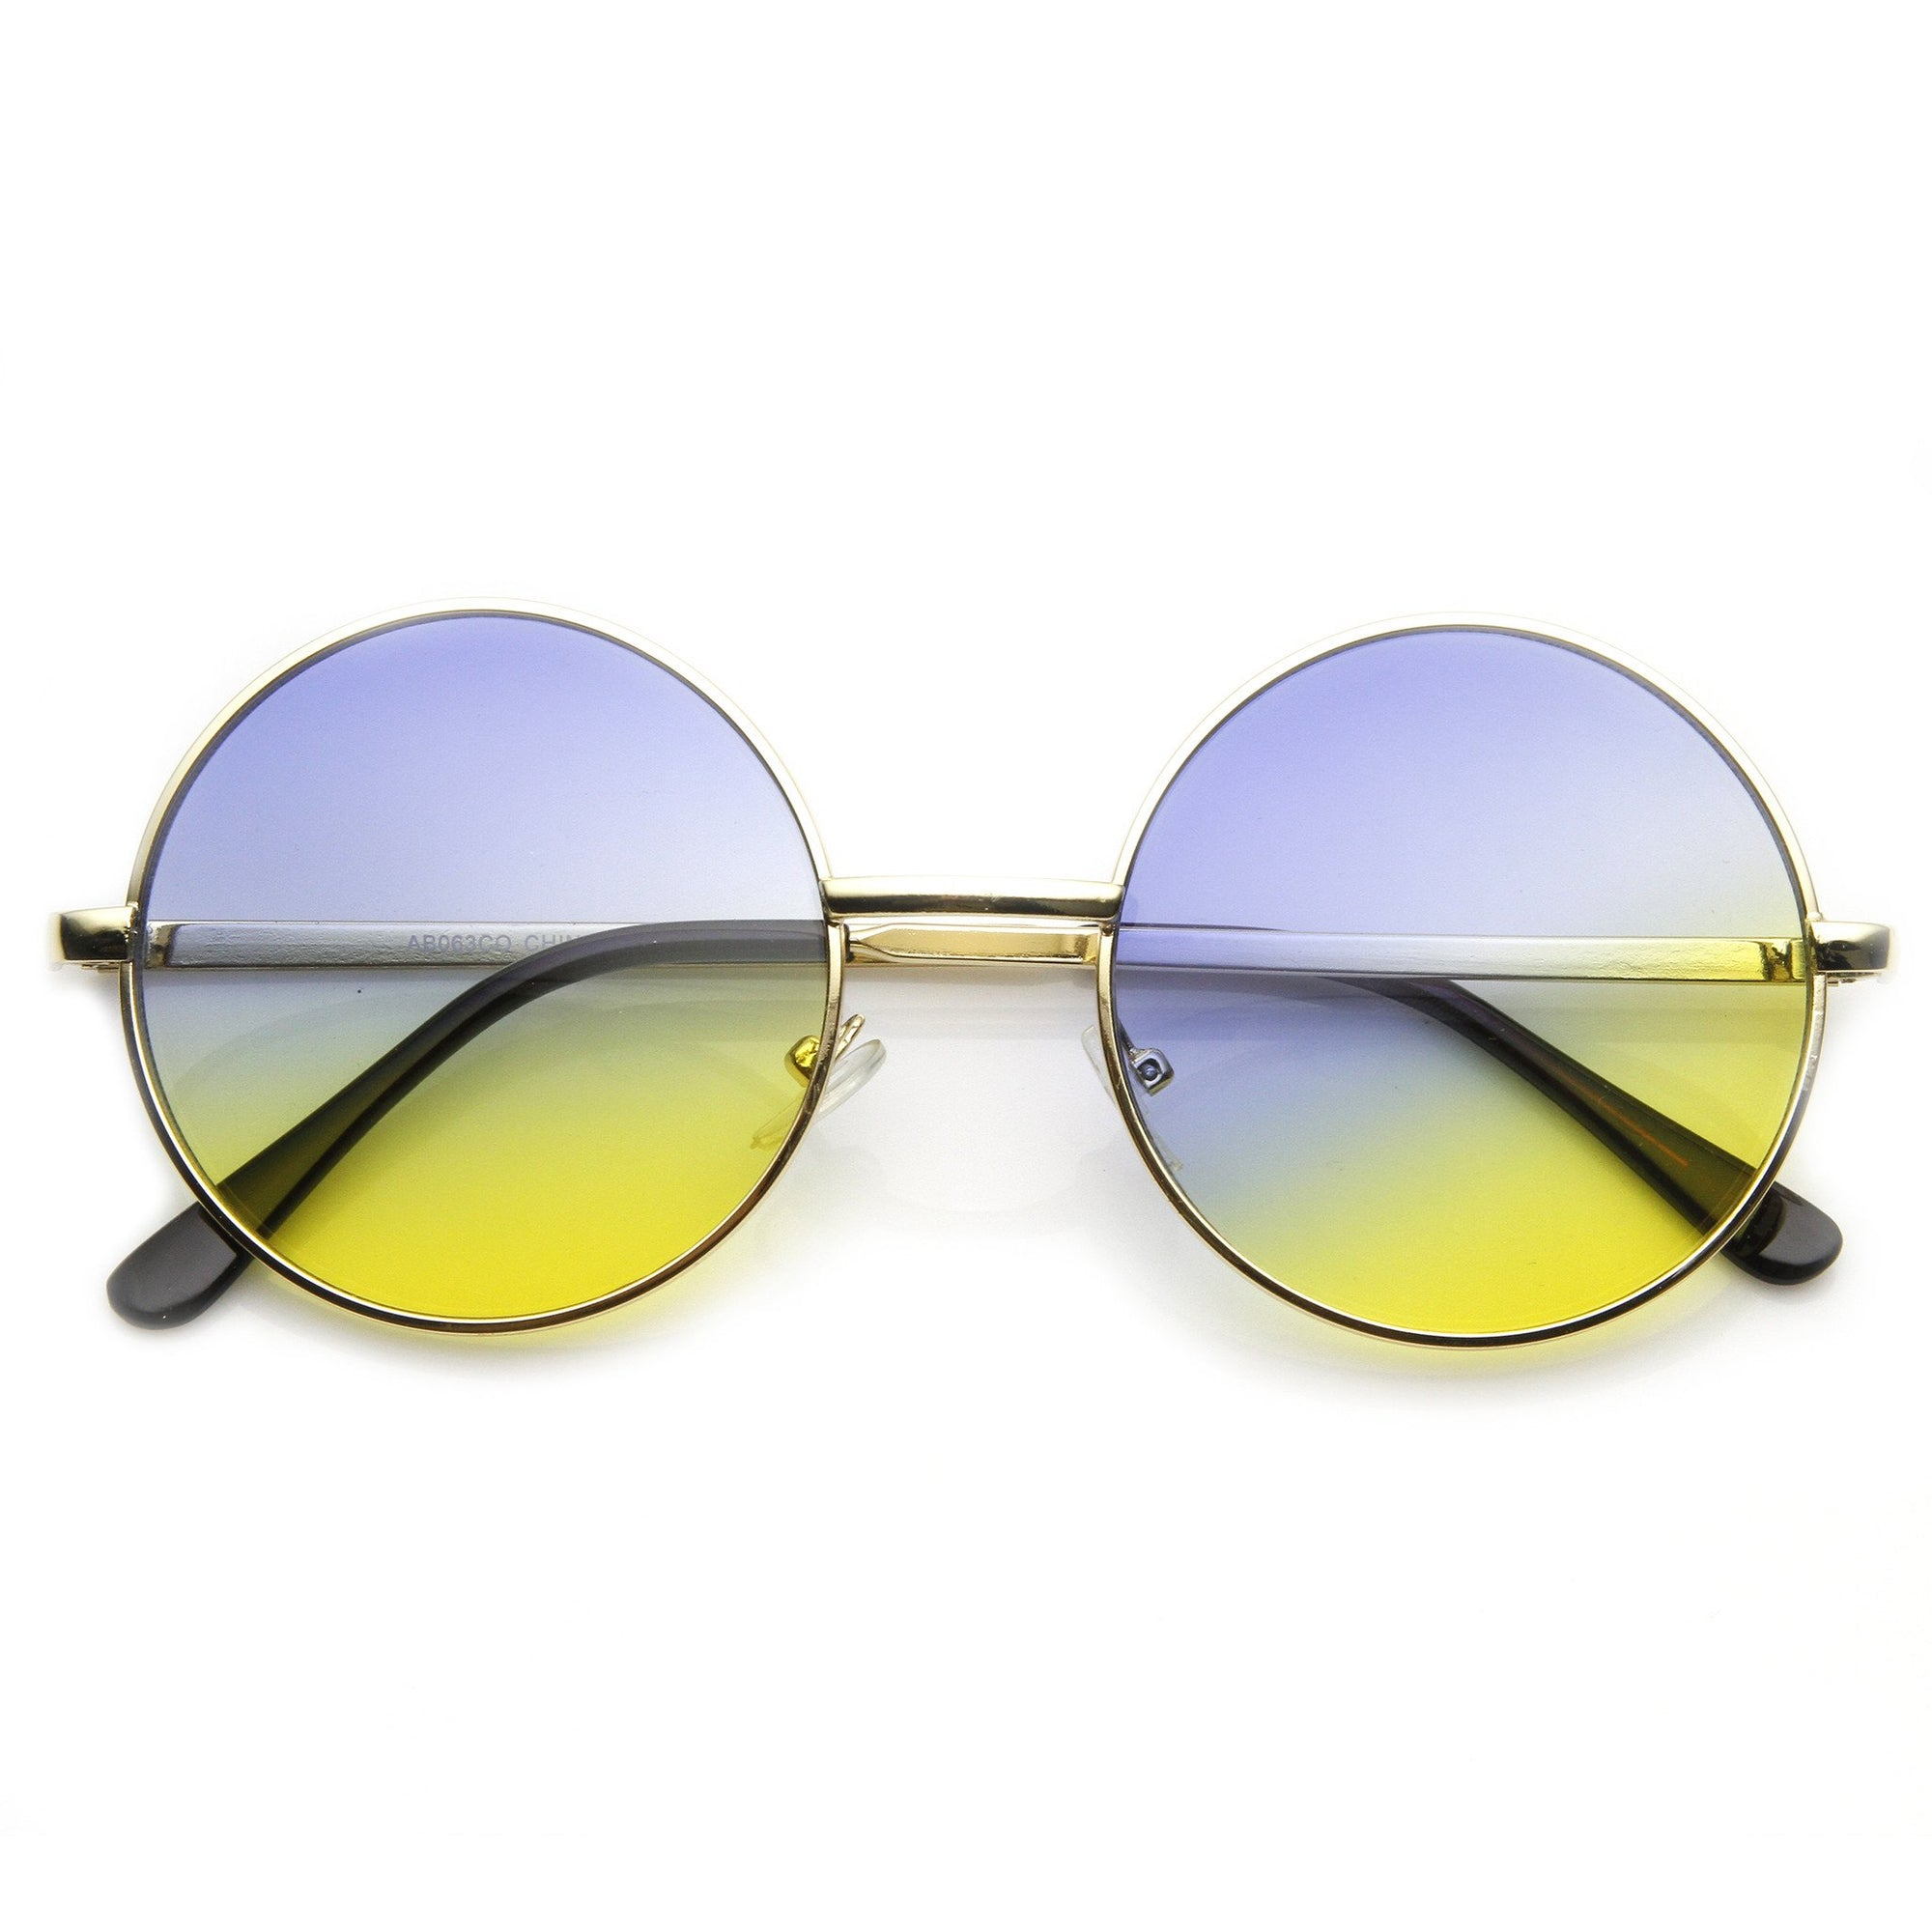 6bcc1c8fa5ada ... Retro Lennon Inspired Round Multi Color Rainbow Lens Sunglasses 9204 ·  Gold Blue Yellow